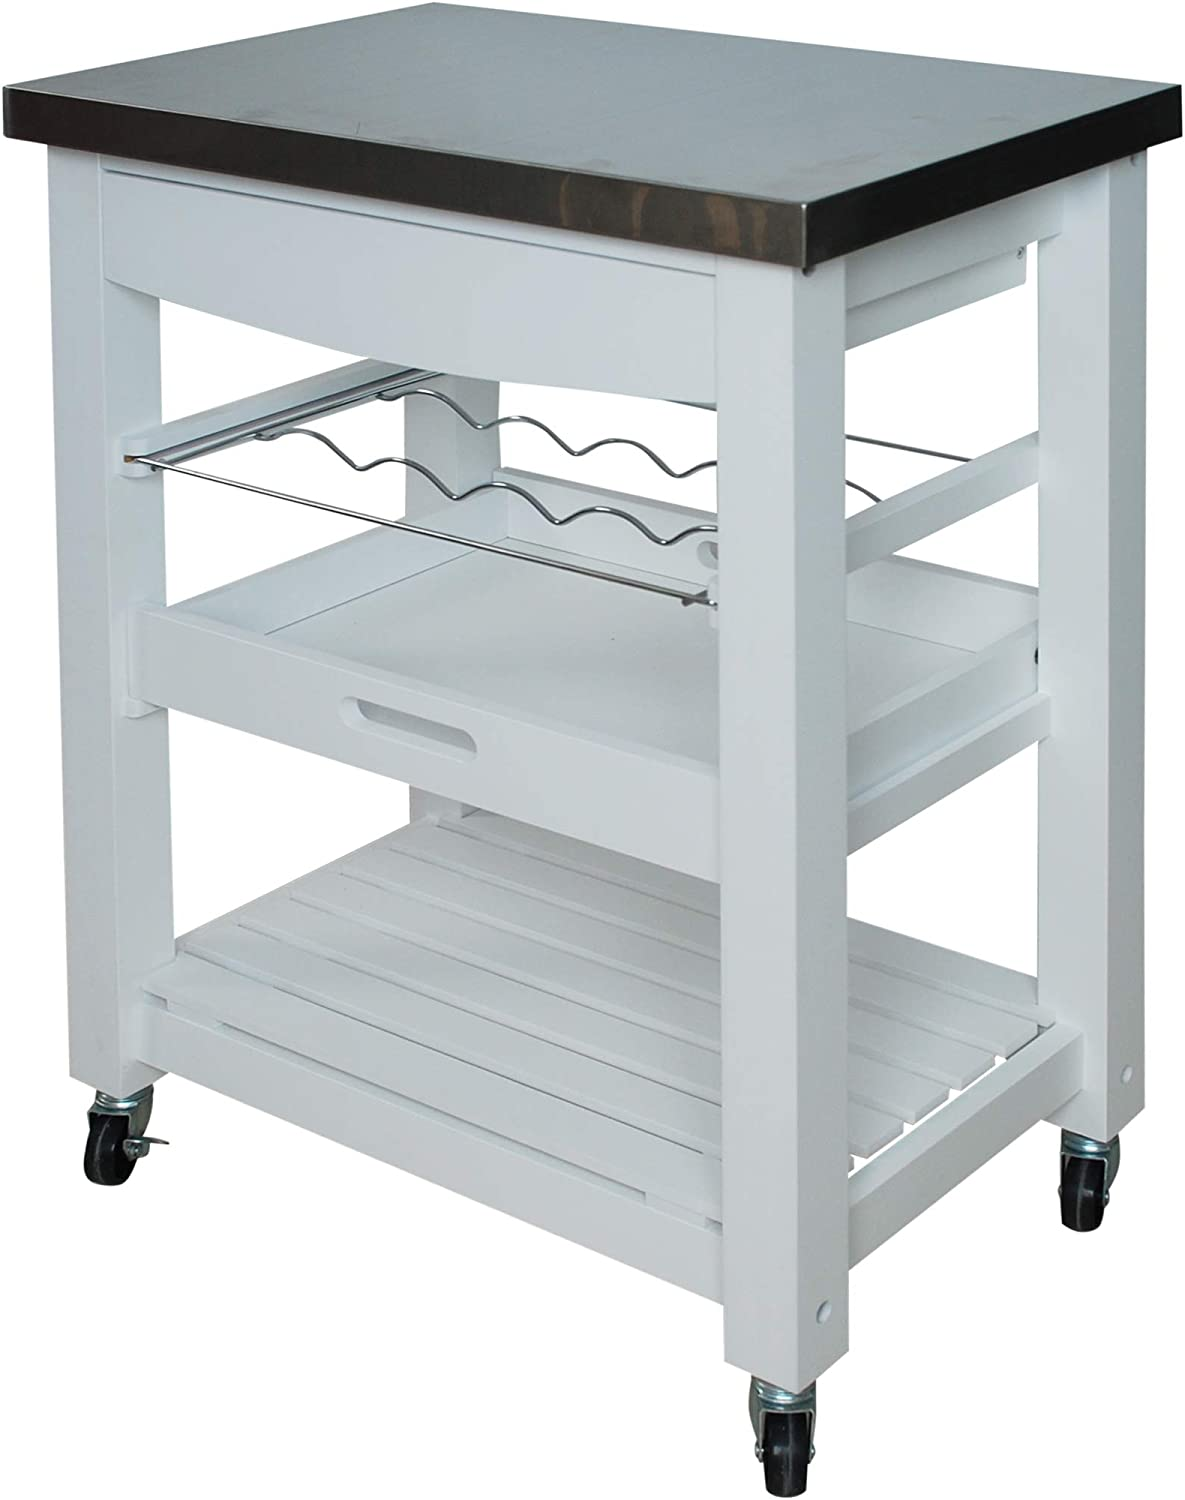 Home Basics Stainless Steel Top Compact Rolling Kitchen Cart Trolley, White